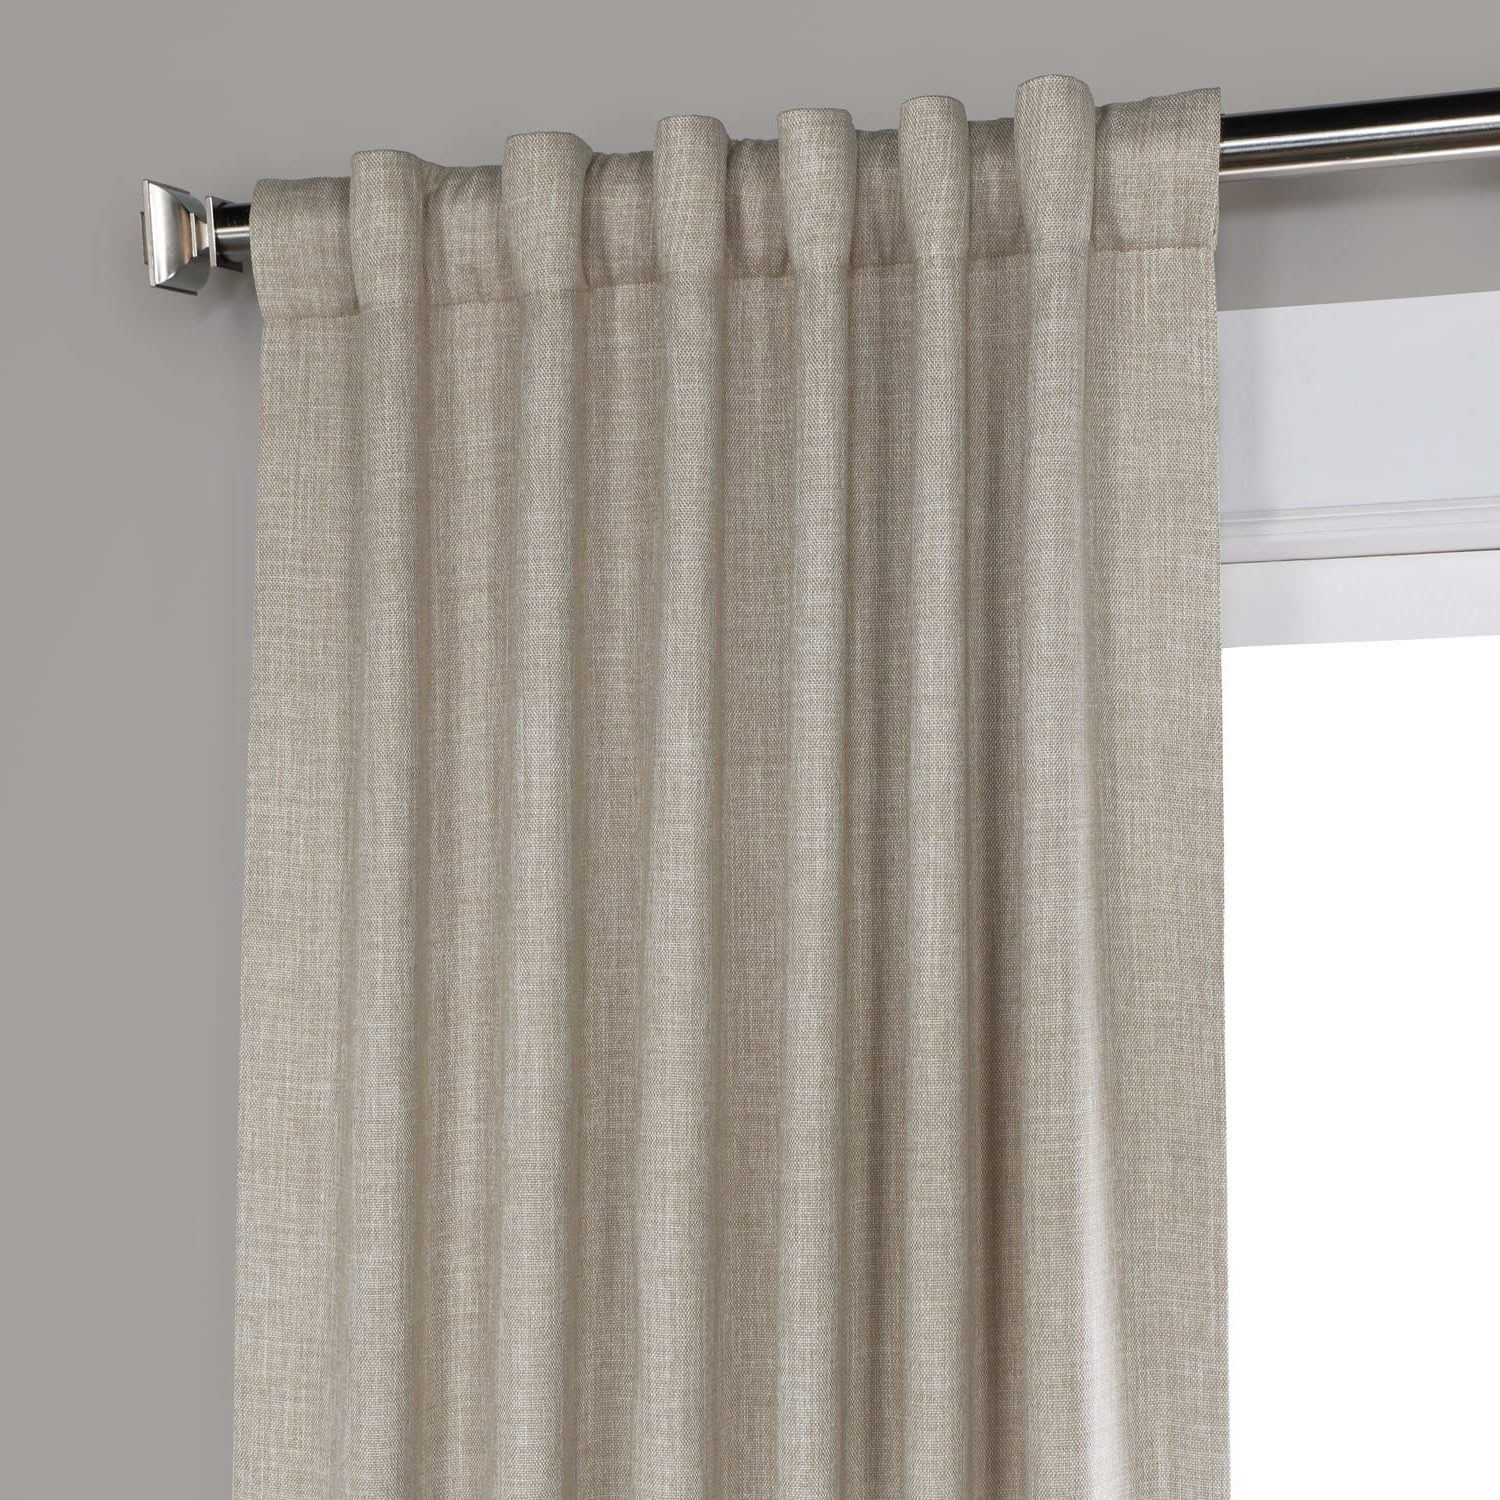 Oatmeal Faux Linen Blackout Room Darkening Curtain Pertaining To Most Popular Faux Linen Blackout Curtains (View 13 of 20)